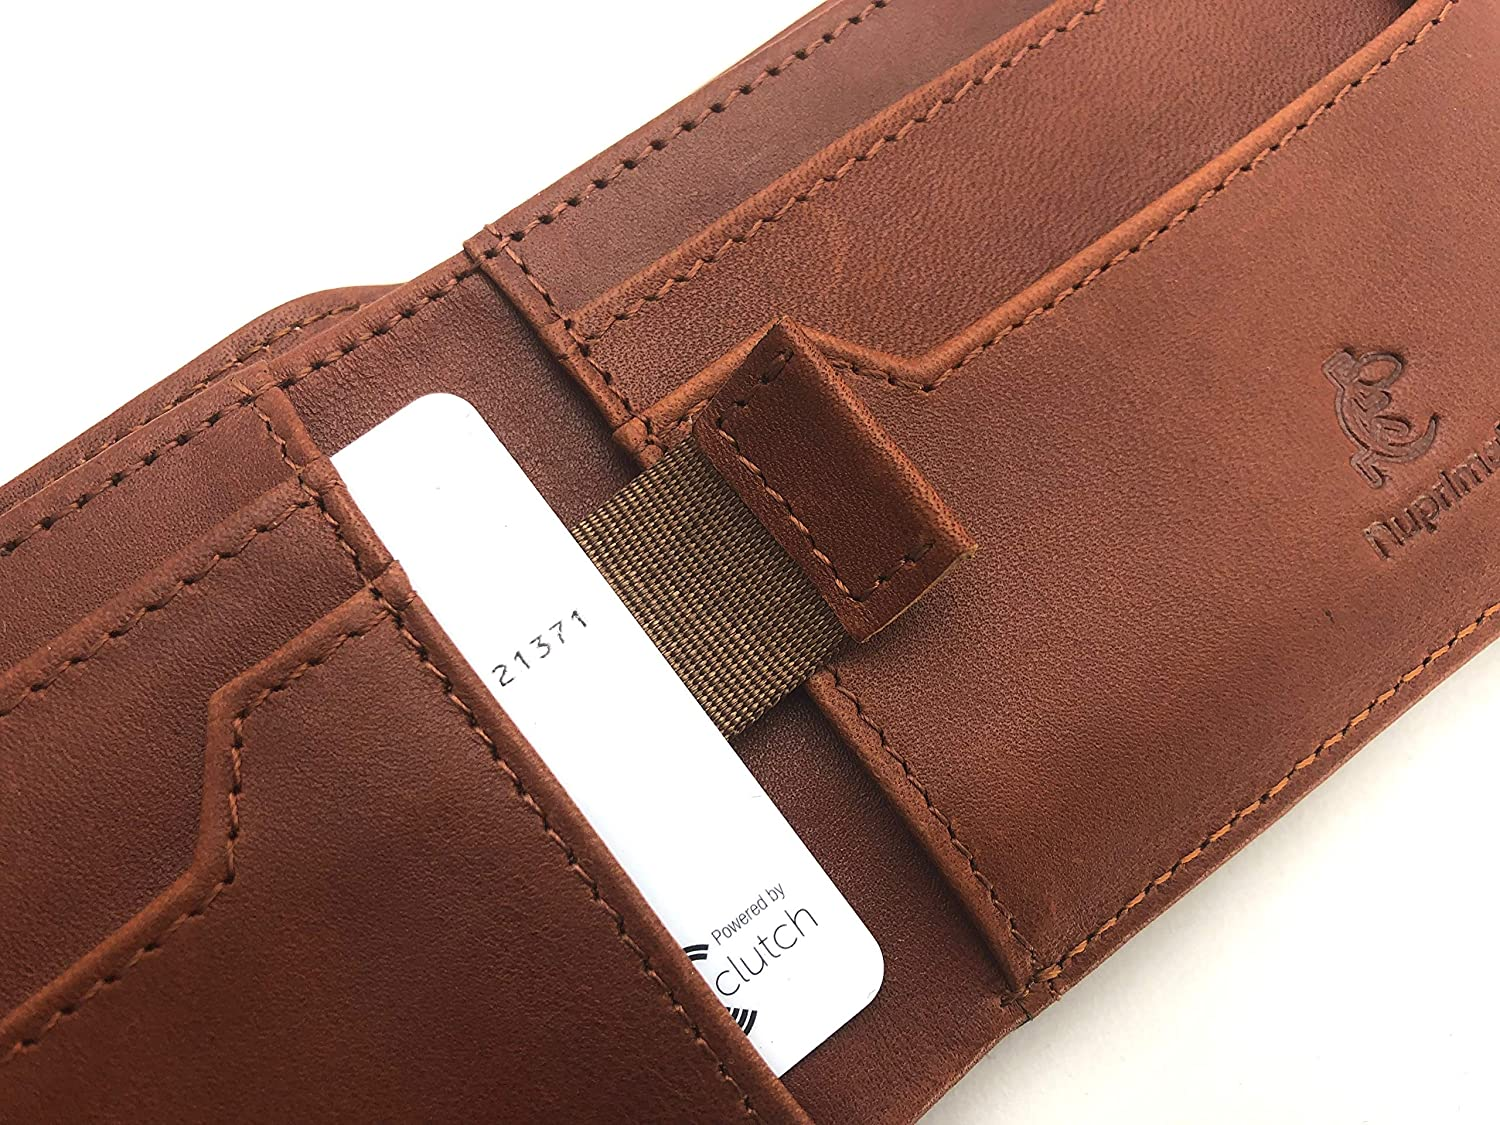 Slim Front Pocket Bifold Leather Wallet With RFID Blocking Nuprimal ThinFold Wallet